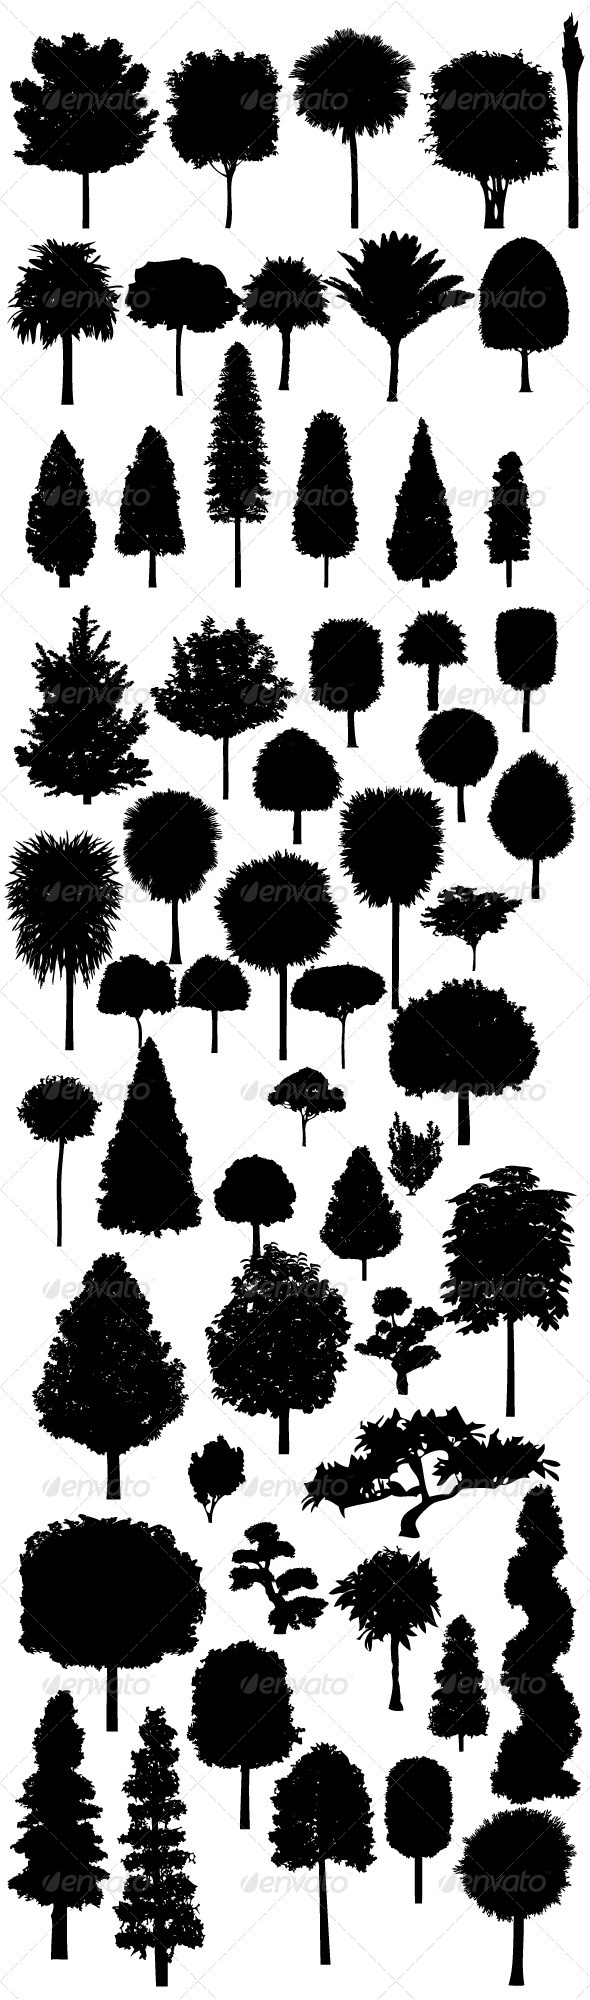 GraphicRiver Tree Silhouettes Big Pack 8470952